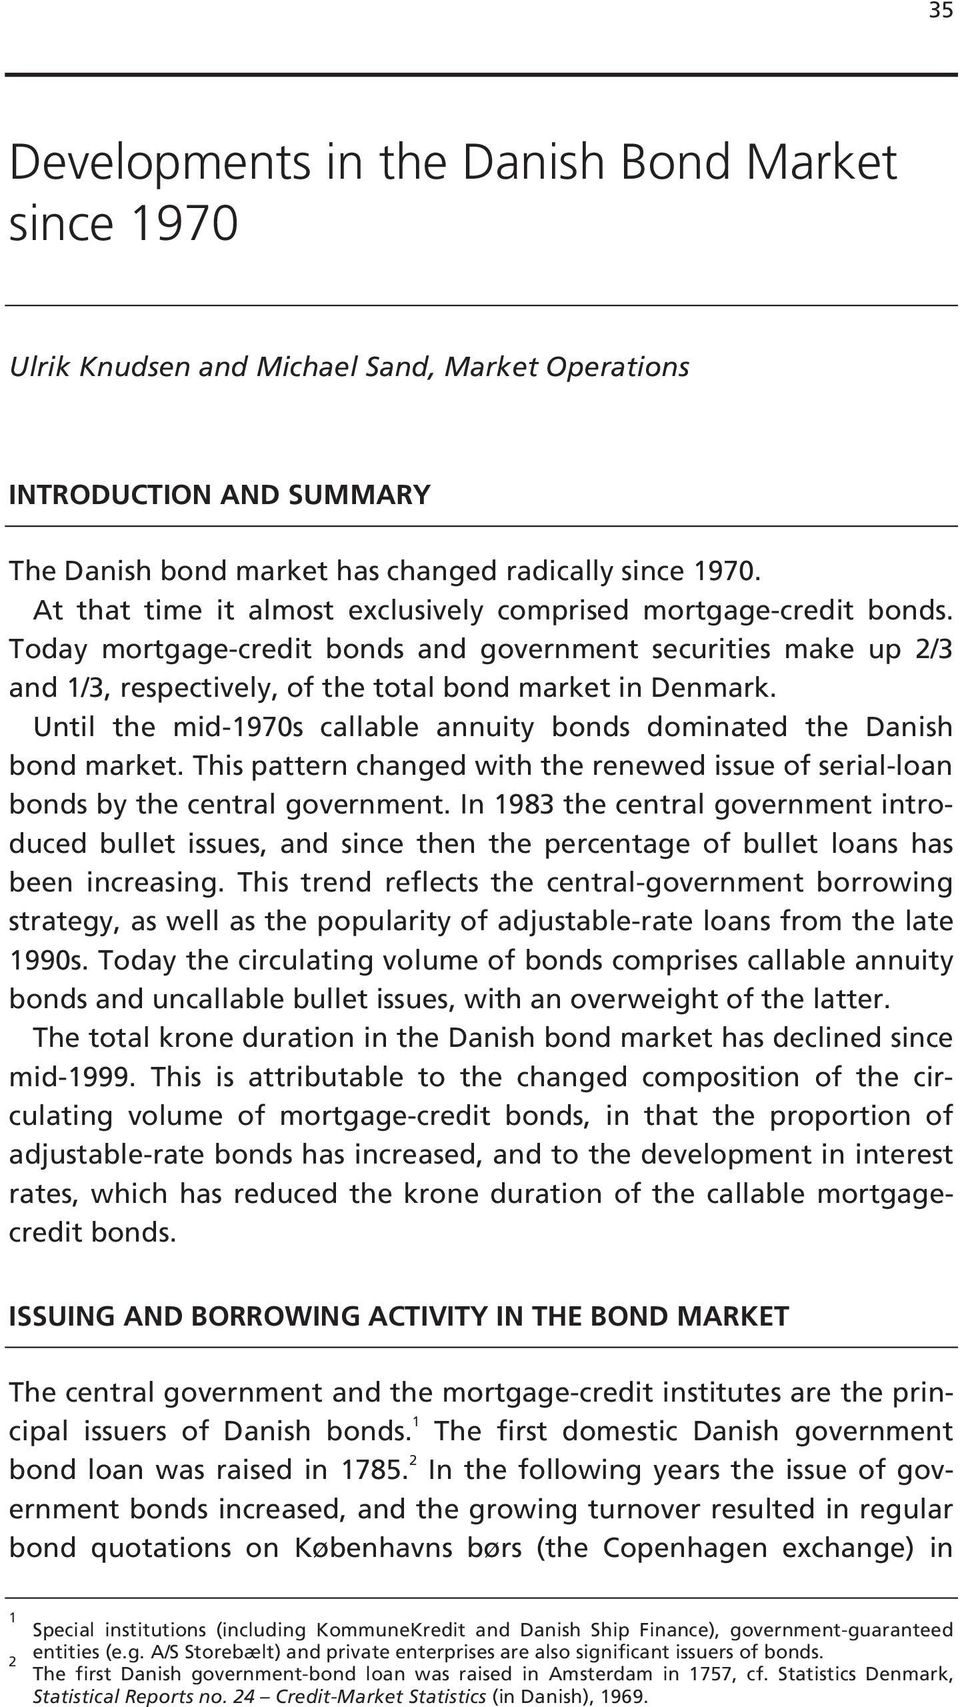 Until the mid-97s callable annuity bonds dominated the Danish bond market. This pattern changed with the renewed issue of serial-loan bonds by the central government.